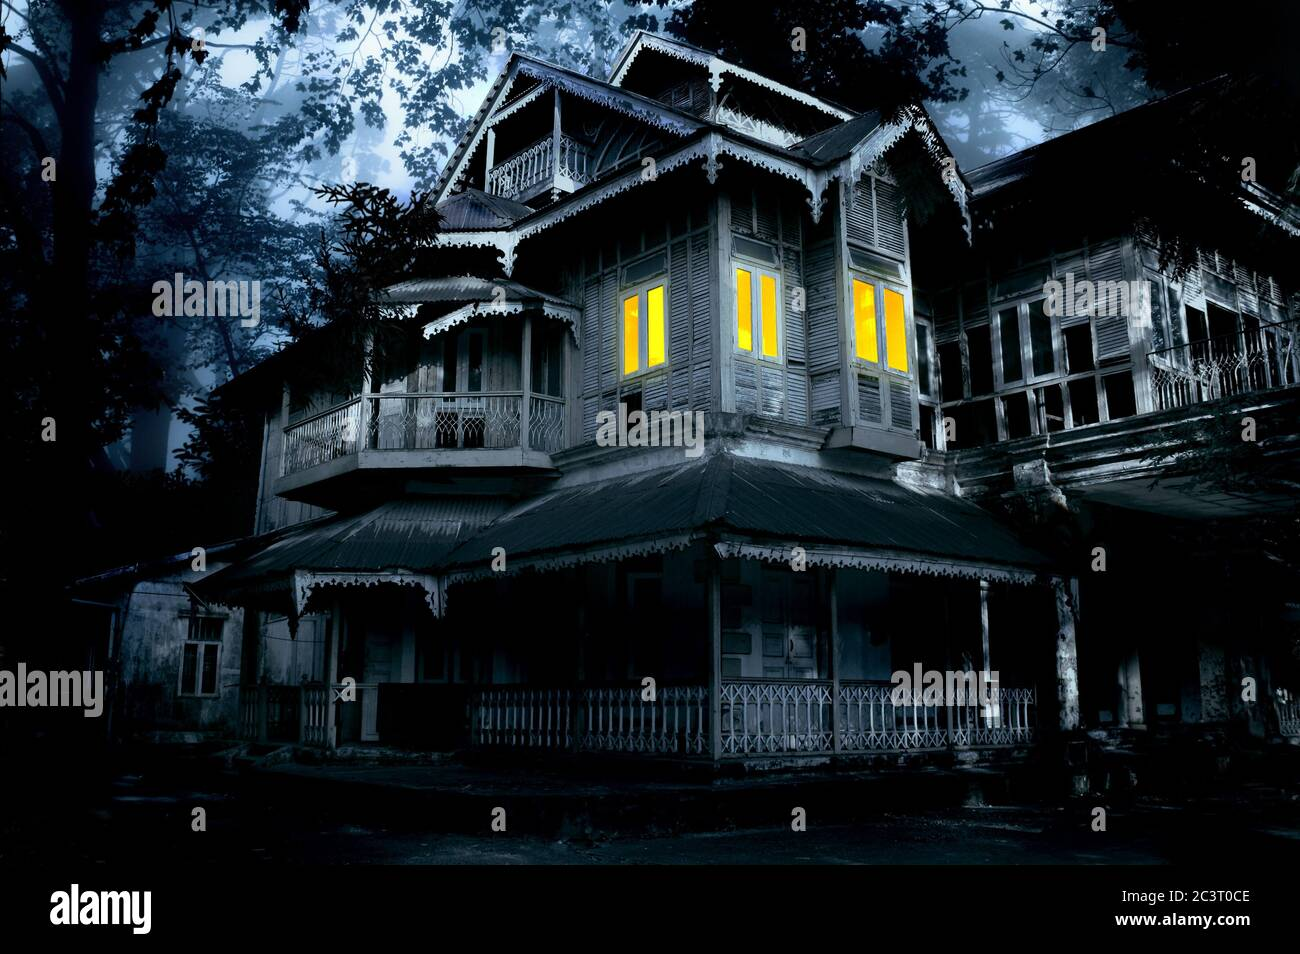 Haunted House Old Abandoned House With Lighted Windows In The Spooky Night Forest Scary Colonial Cottage In Mysterious Forestland Photo Toned In Bl Stock Photo Alamy